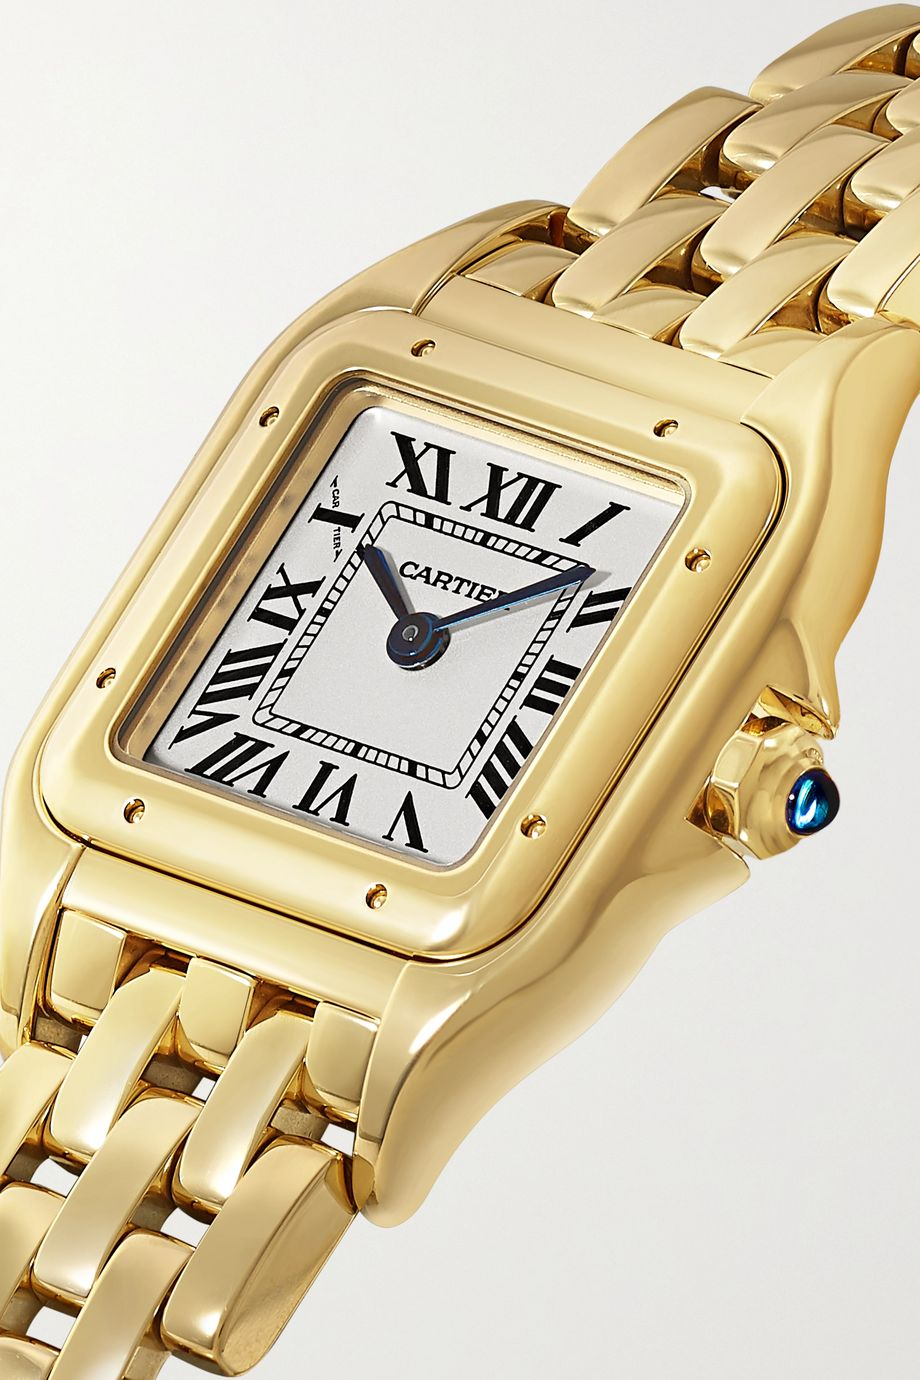 Cartier Panthère de Cartier 22mm small 18-karat gold watch